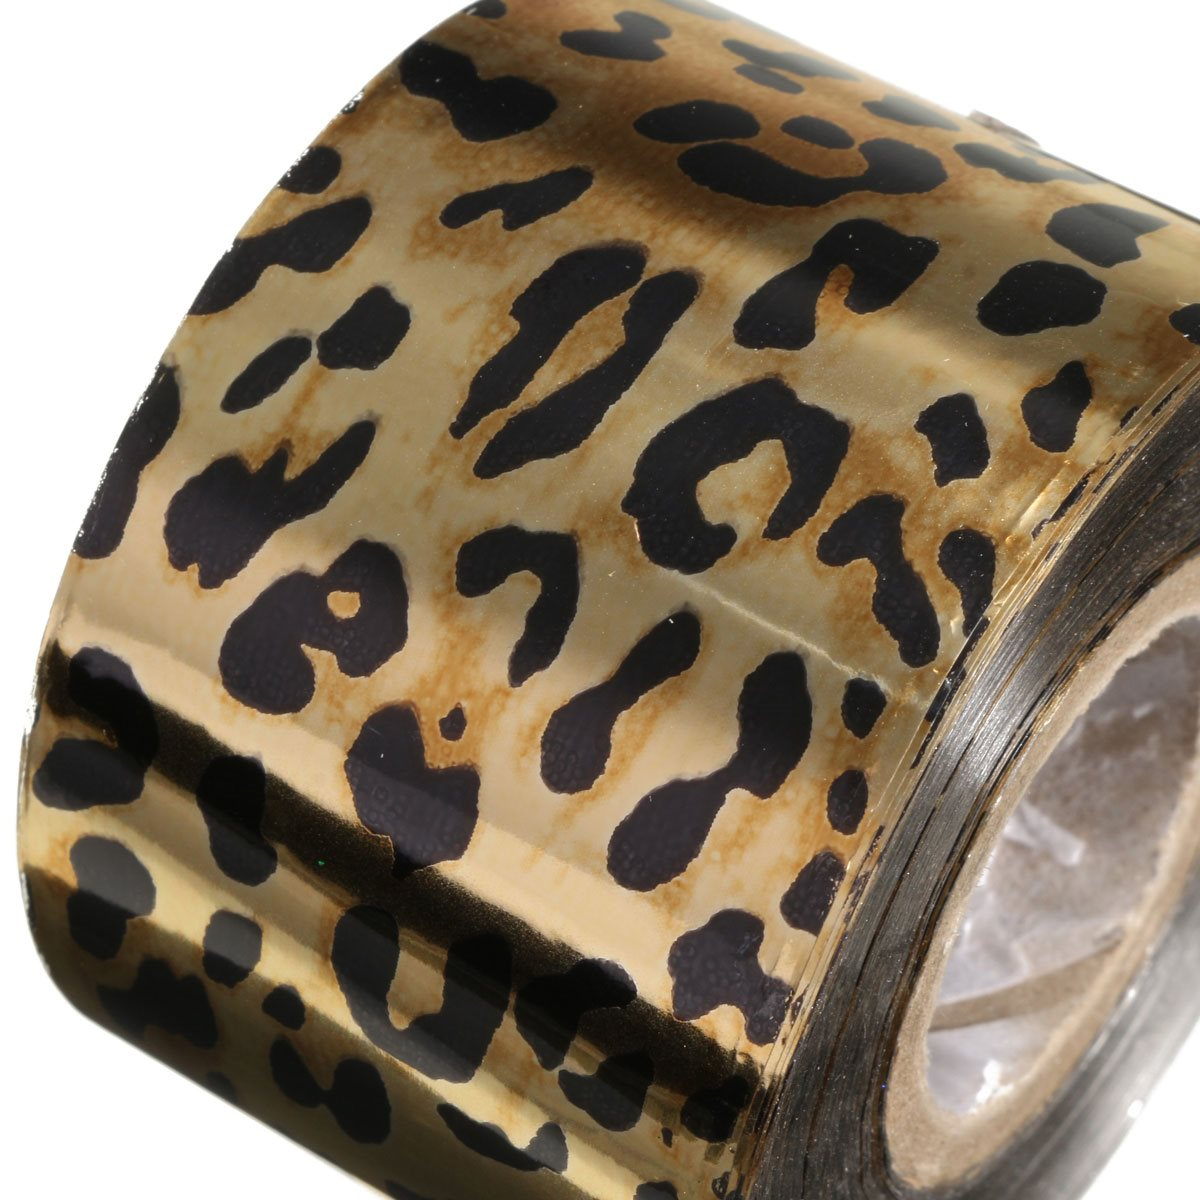 New Fashion 1Roll Leopard Nail Art Foil Stickers Decals Transfer Craft Fingernails Nails Decorations DIY Tool Accessory 5Style 233 style new 8 pcs lot flower nail decals leopard nail art transfer foil sticker tips decoration christmas snow nails